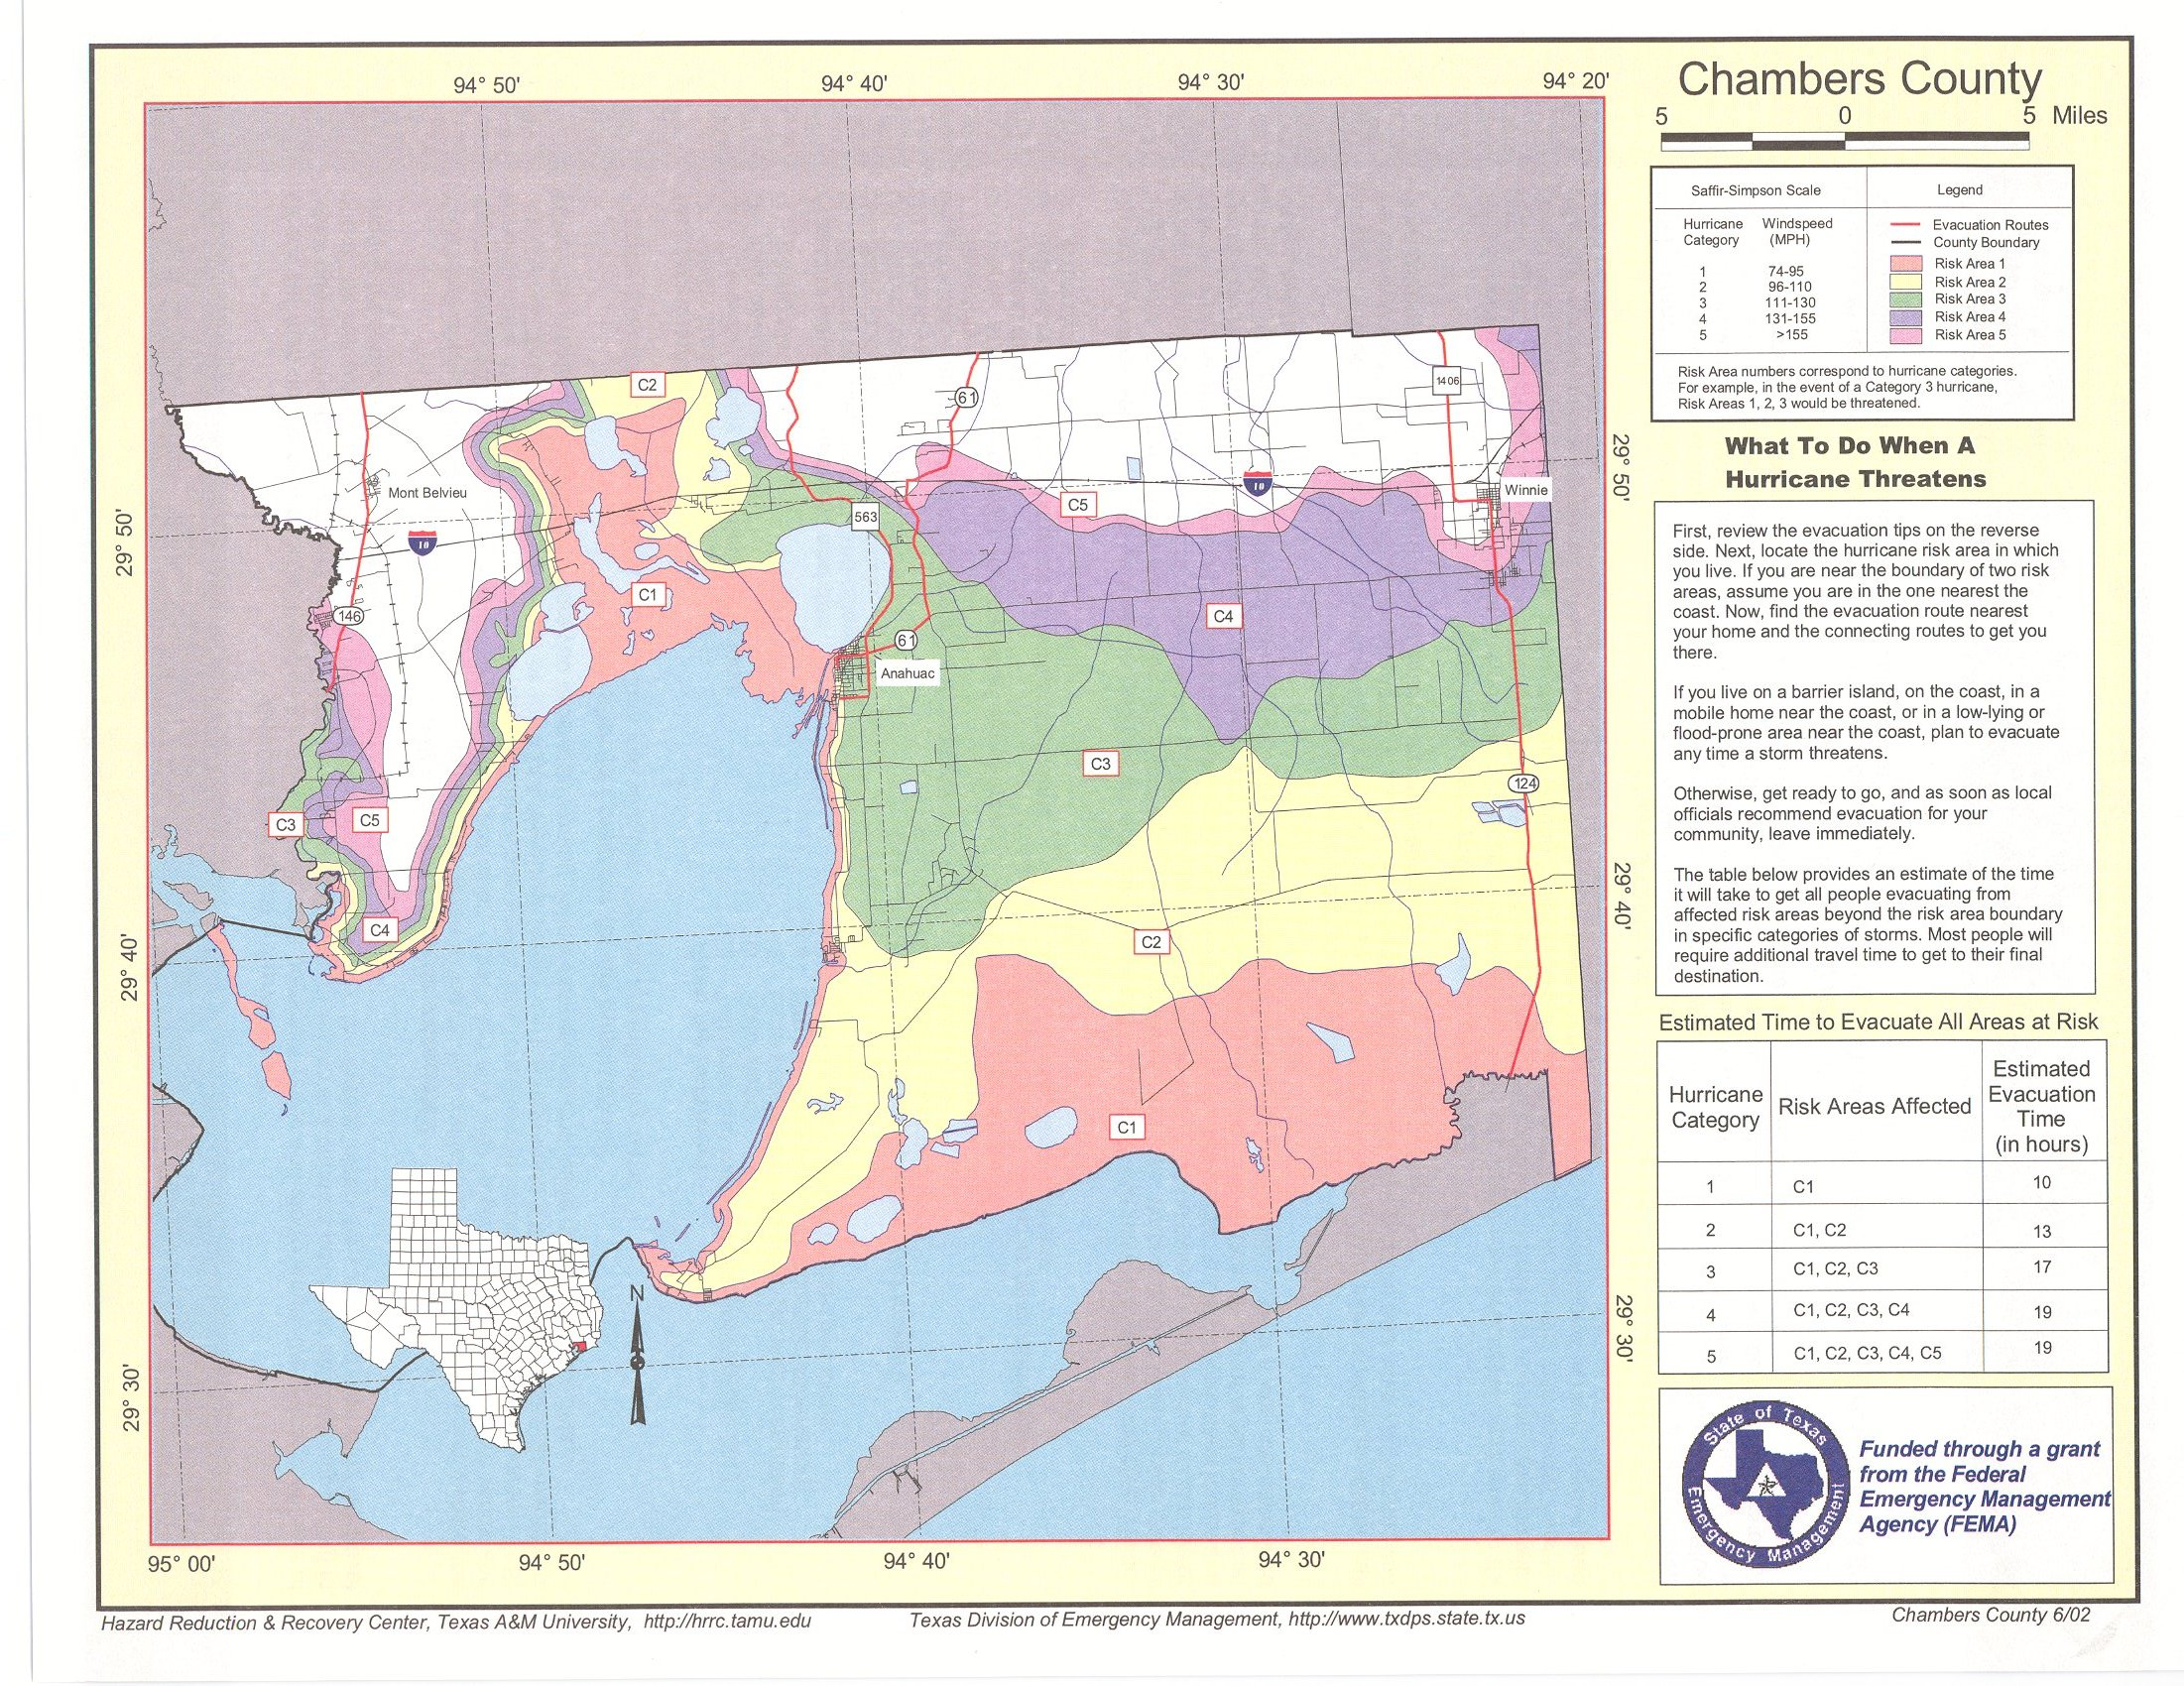 Chambers County Risk Area Map on galveston county zoning map, fort worth flood plain map, galveston county flood zone map, jersey village flood plain map,